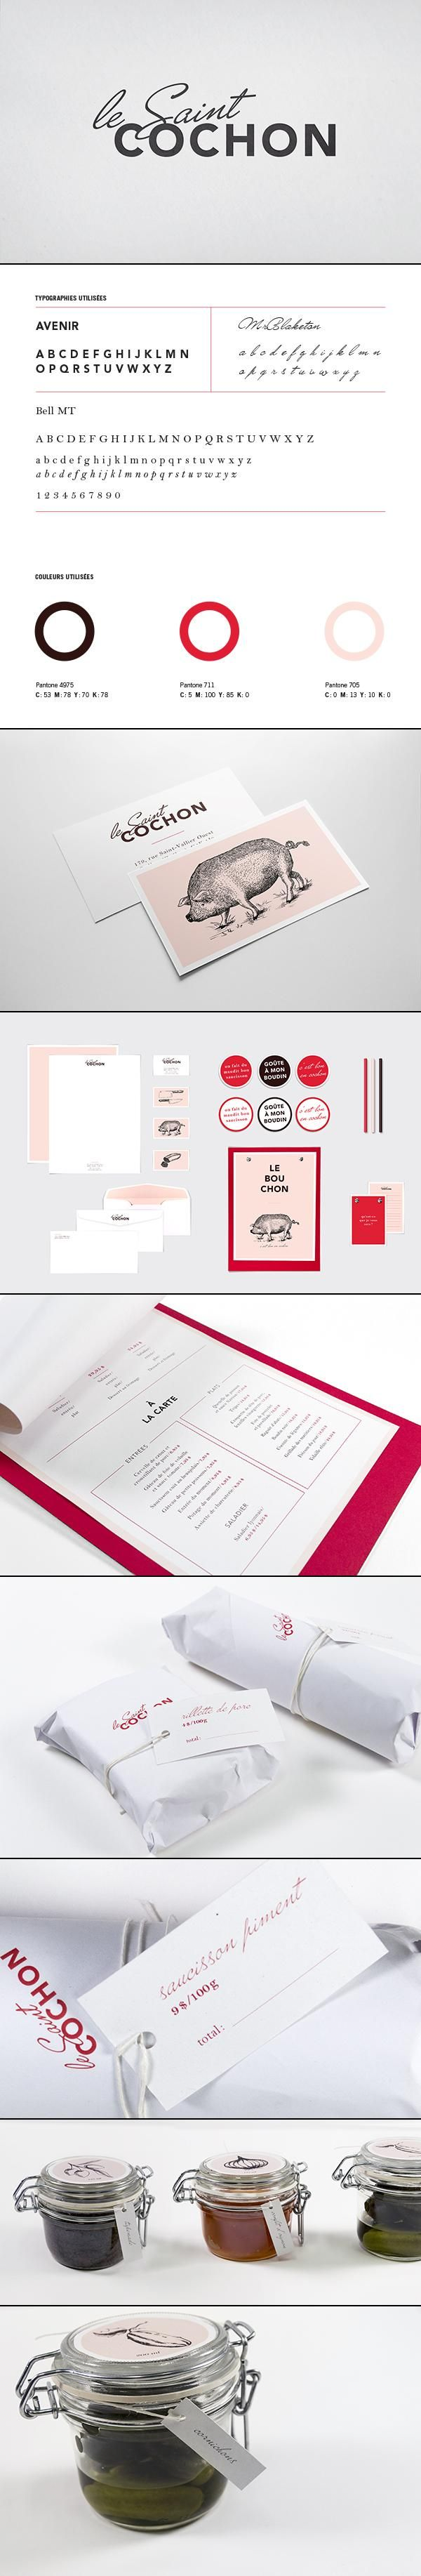 Le Saint Cochon uses memorable colors and vintage graphics to build a beautiful identity | #Branding #Pink